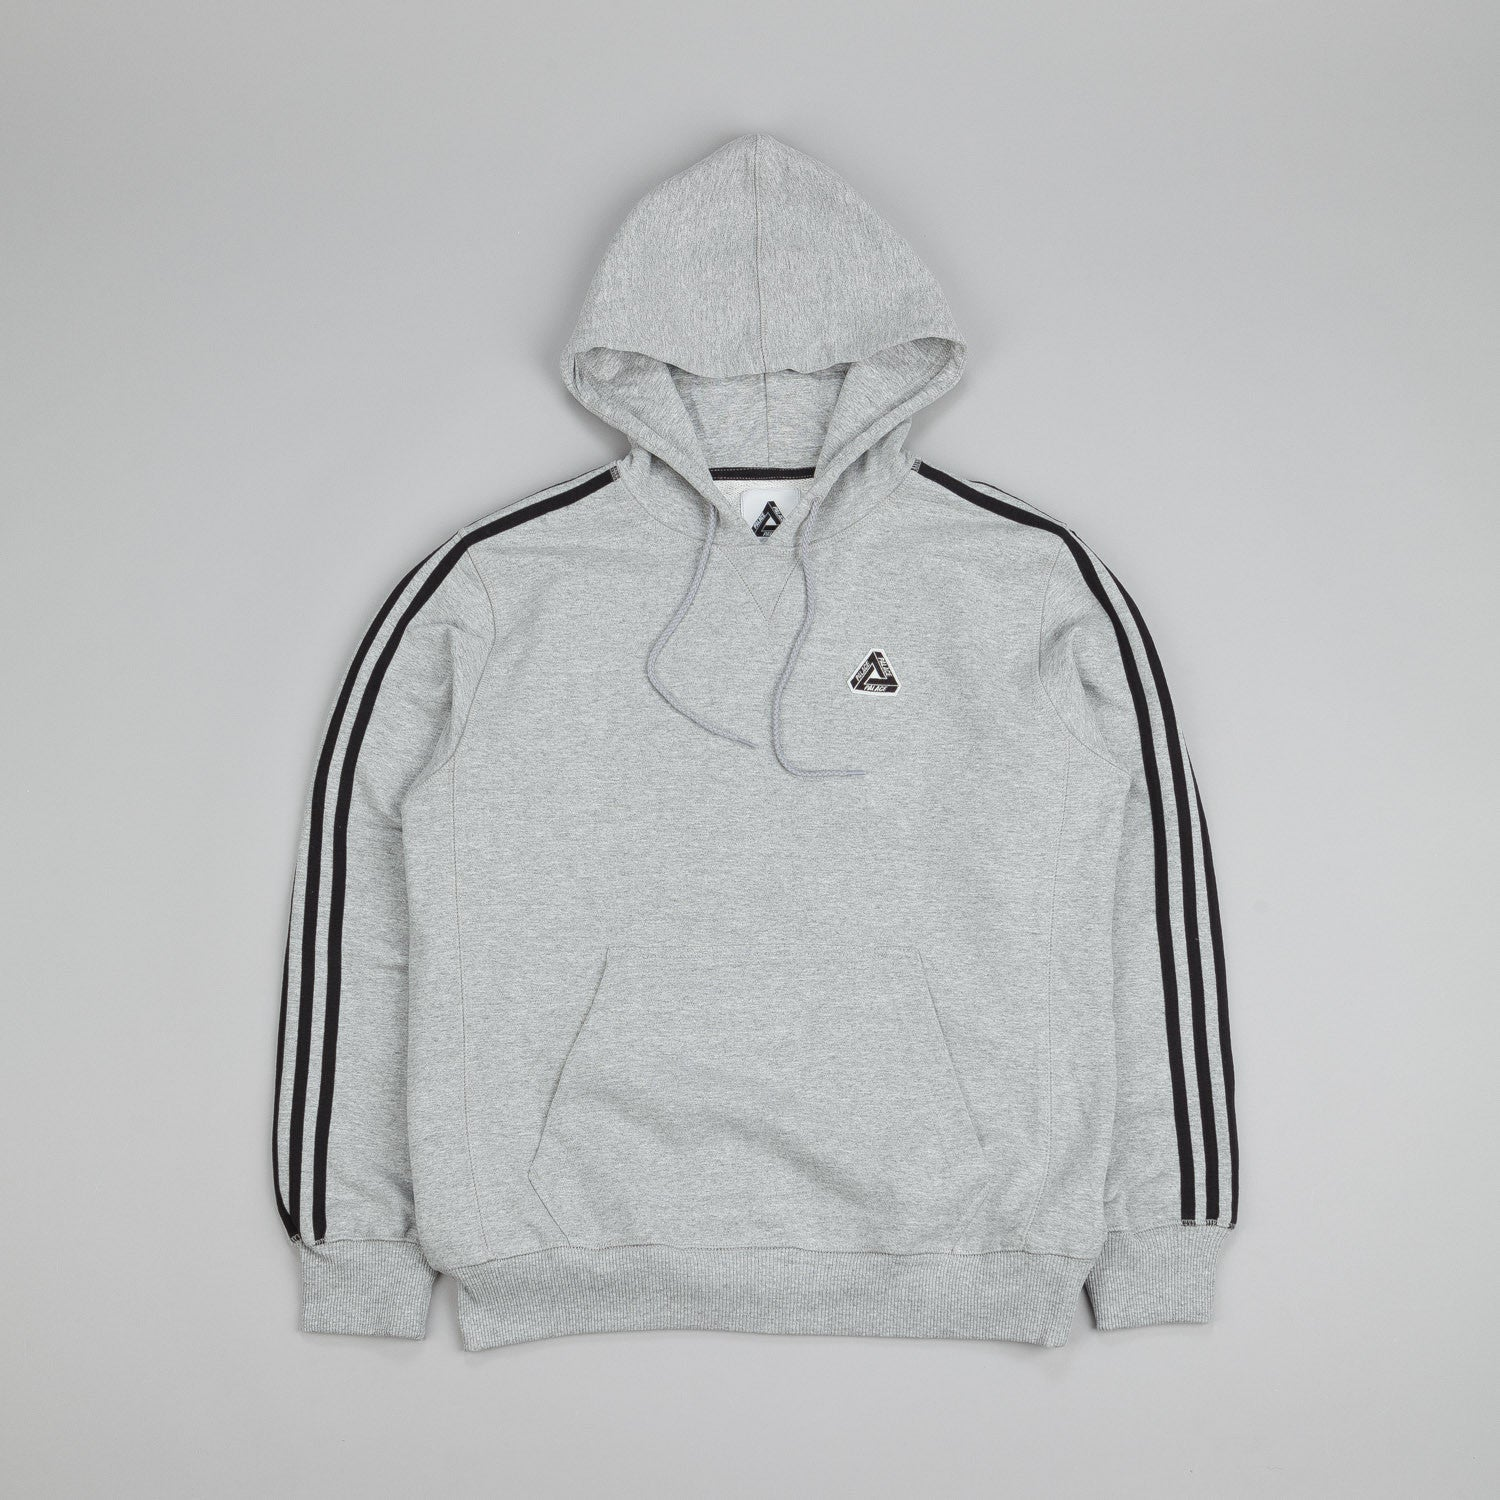 Adidas x Palace Hyper Hooded Sweatshirt Grey Heather